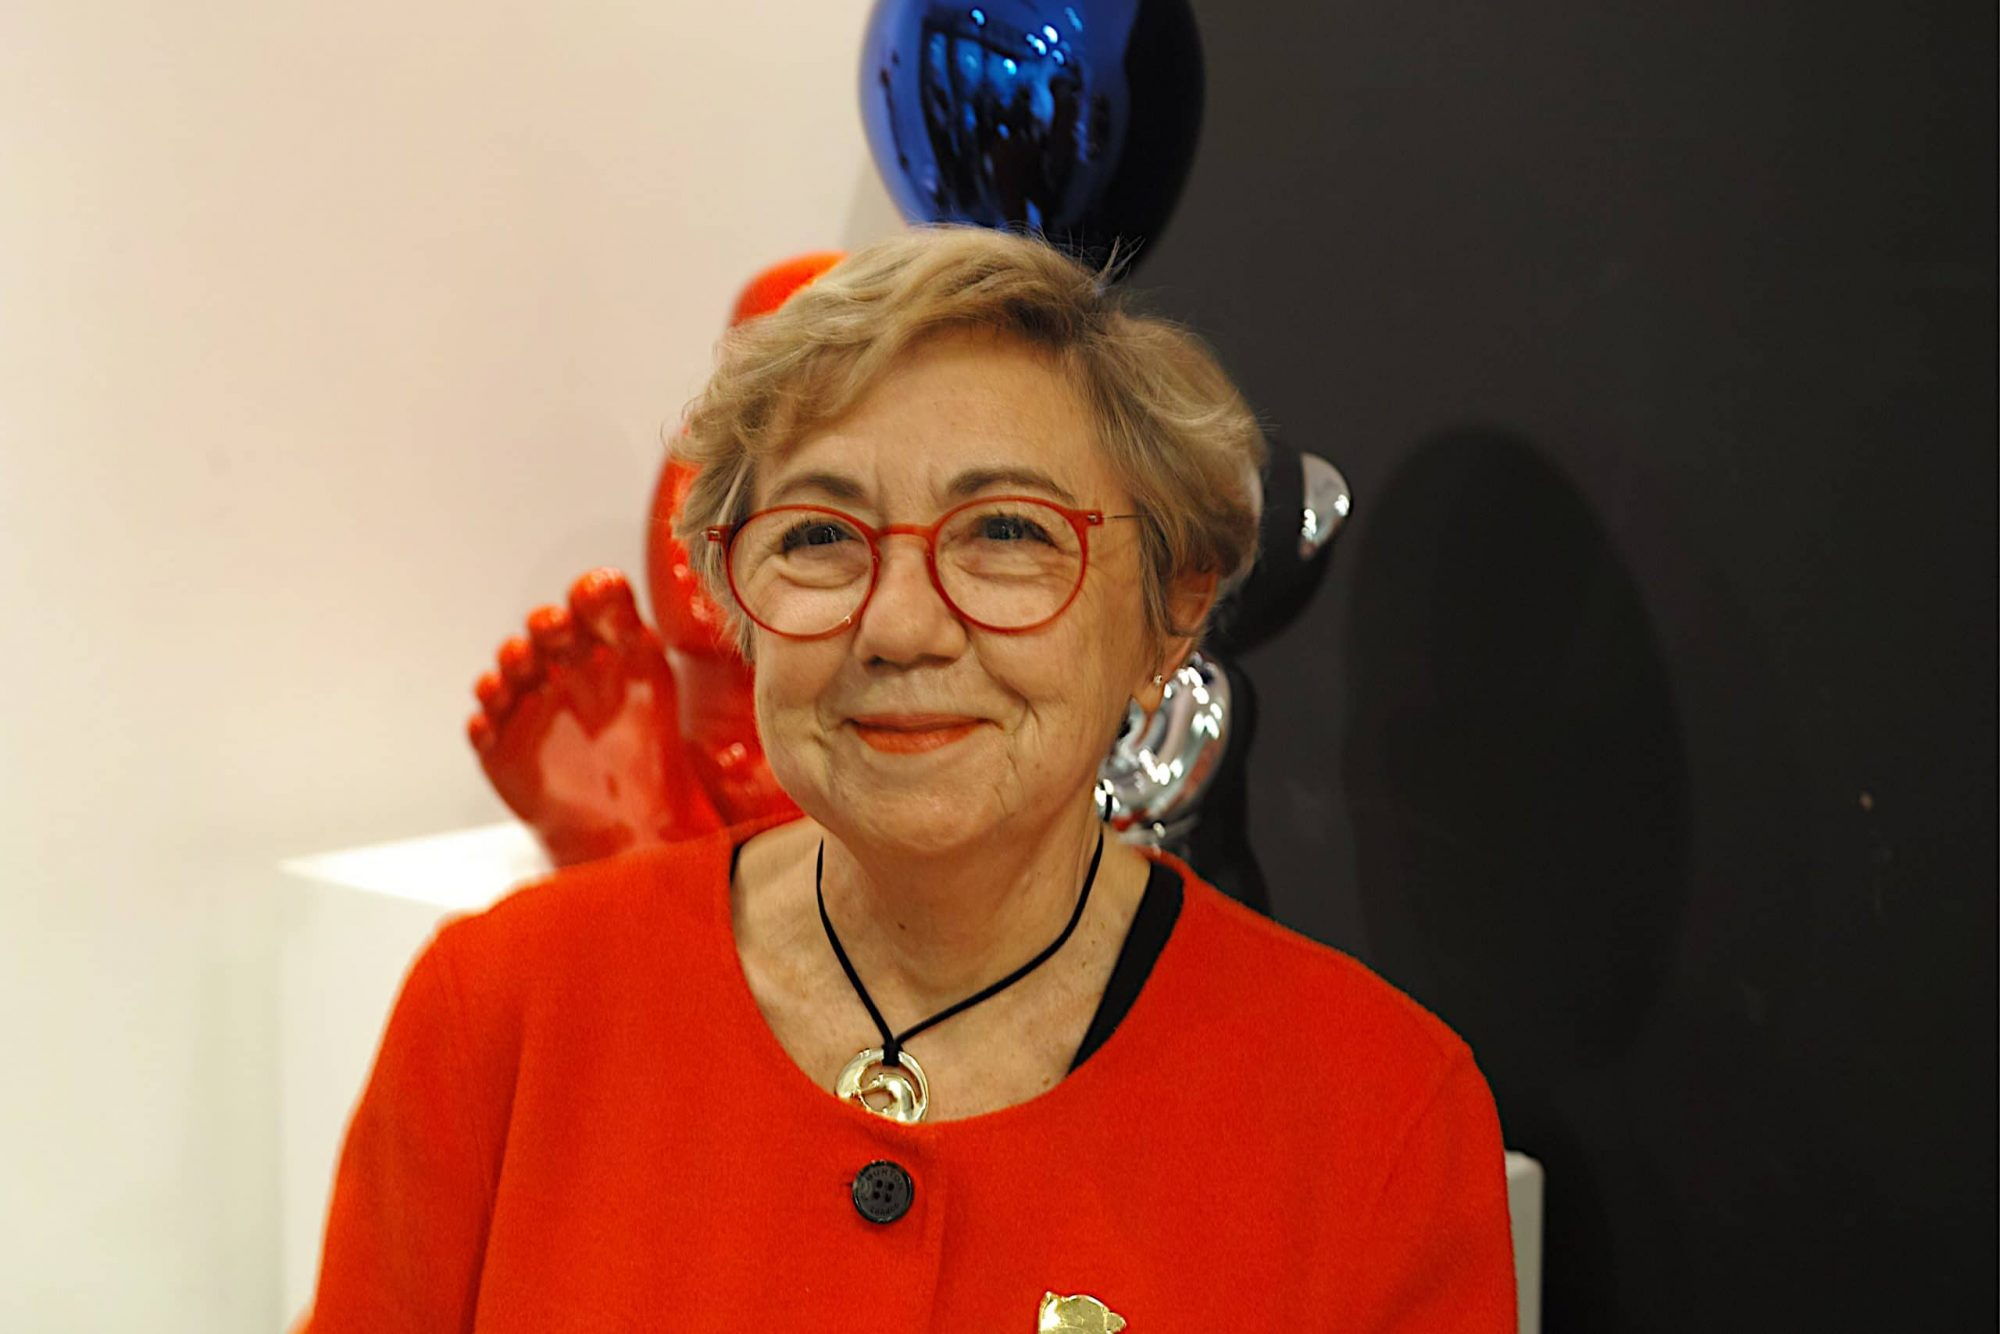 La sculptrice Cévé, dans la Galerie Bel Air Fine Art, Village Royal à Paris 8. Photo © Pierre d'Ornano